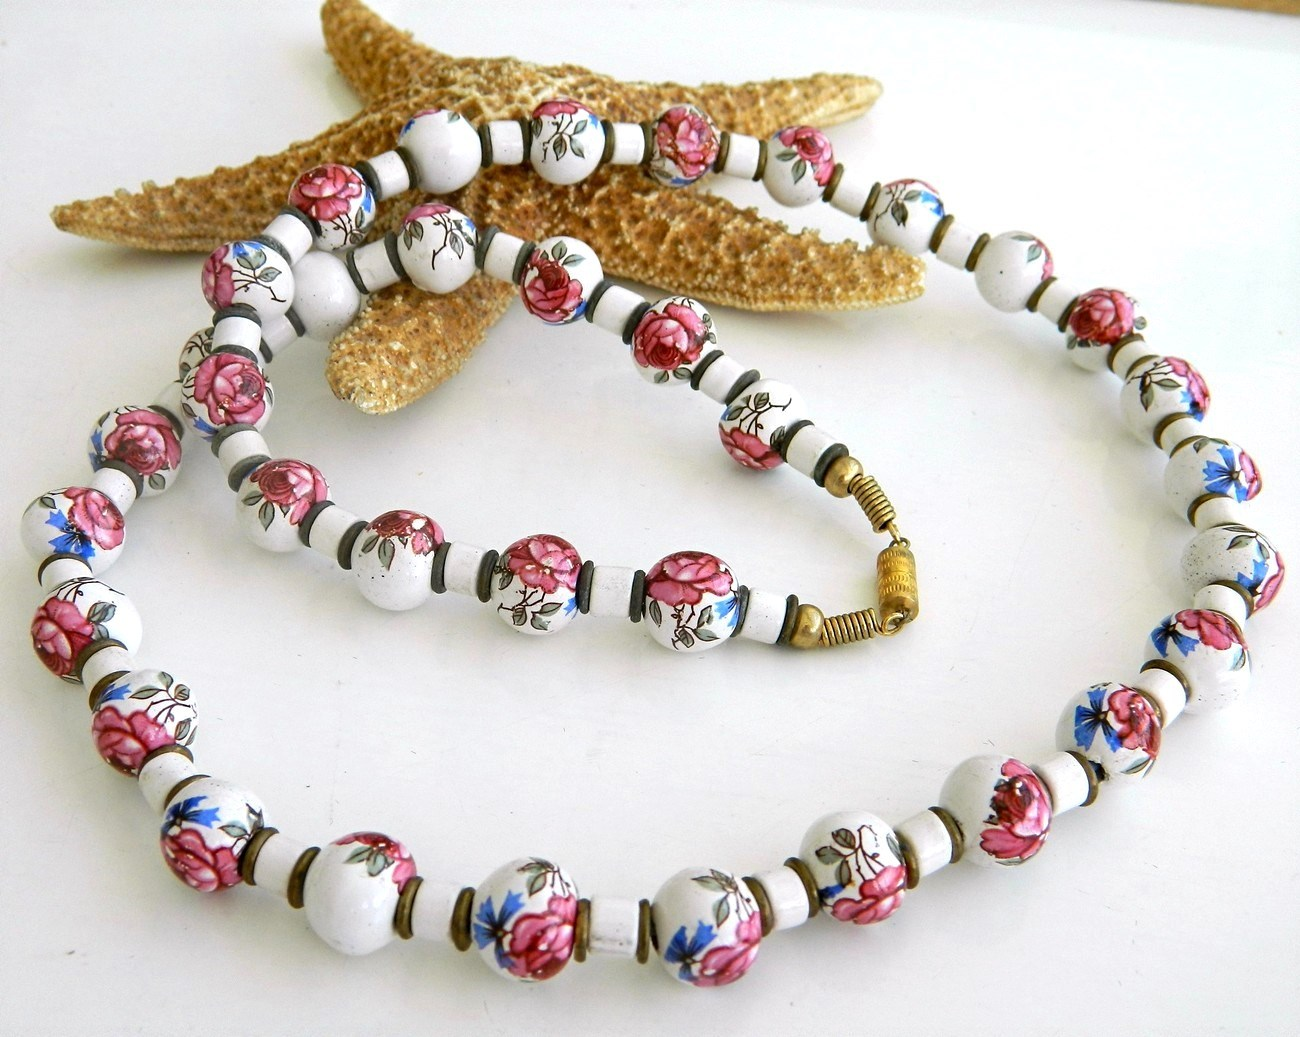 Vintage Hand Painted Porcelain Ceramic Beads Strand Necklace Roses